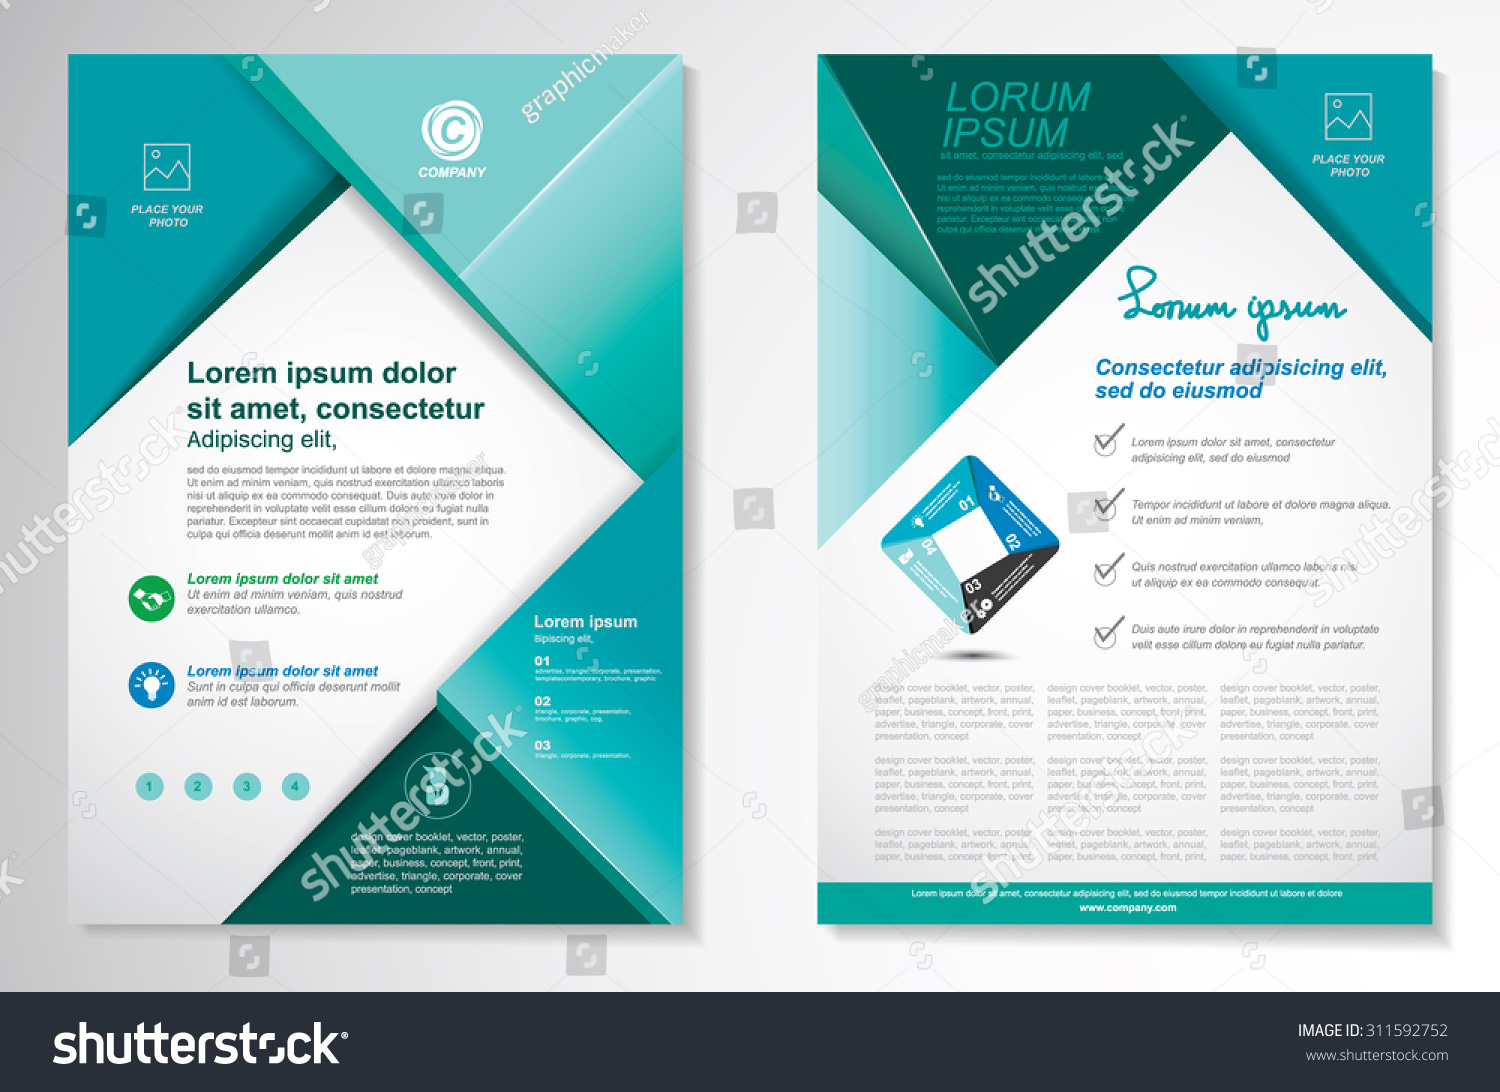 vector brochure flyer design layout template stock vector vector brochure flyer design layout template size a4 front page and back page